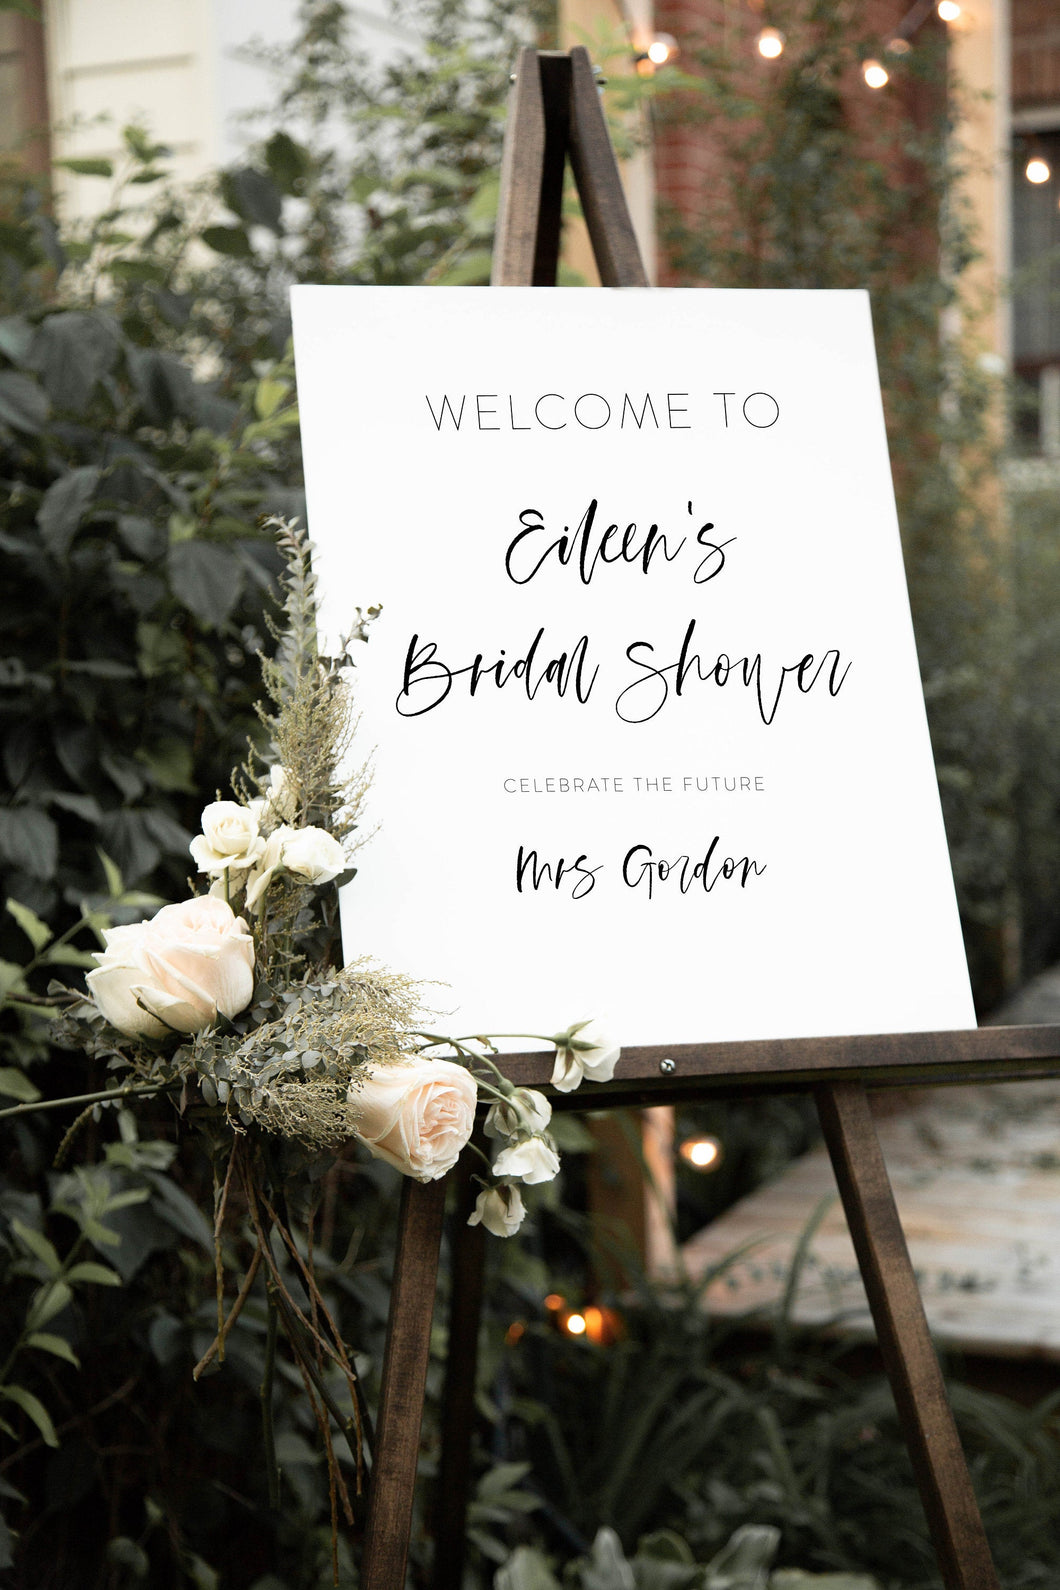 Printable Bridal Shower Welcome Sign Template Editable Instant Download Wedding Décor - Eileen